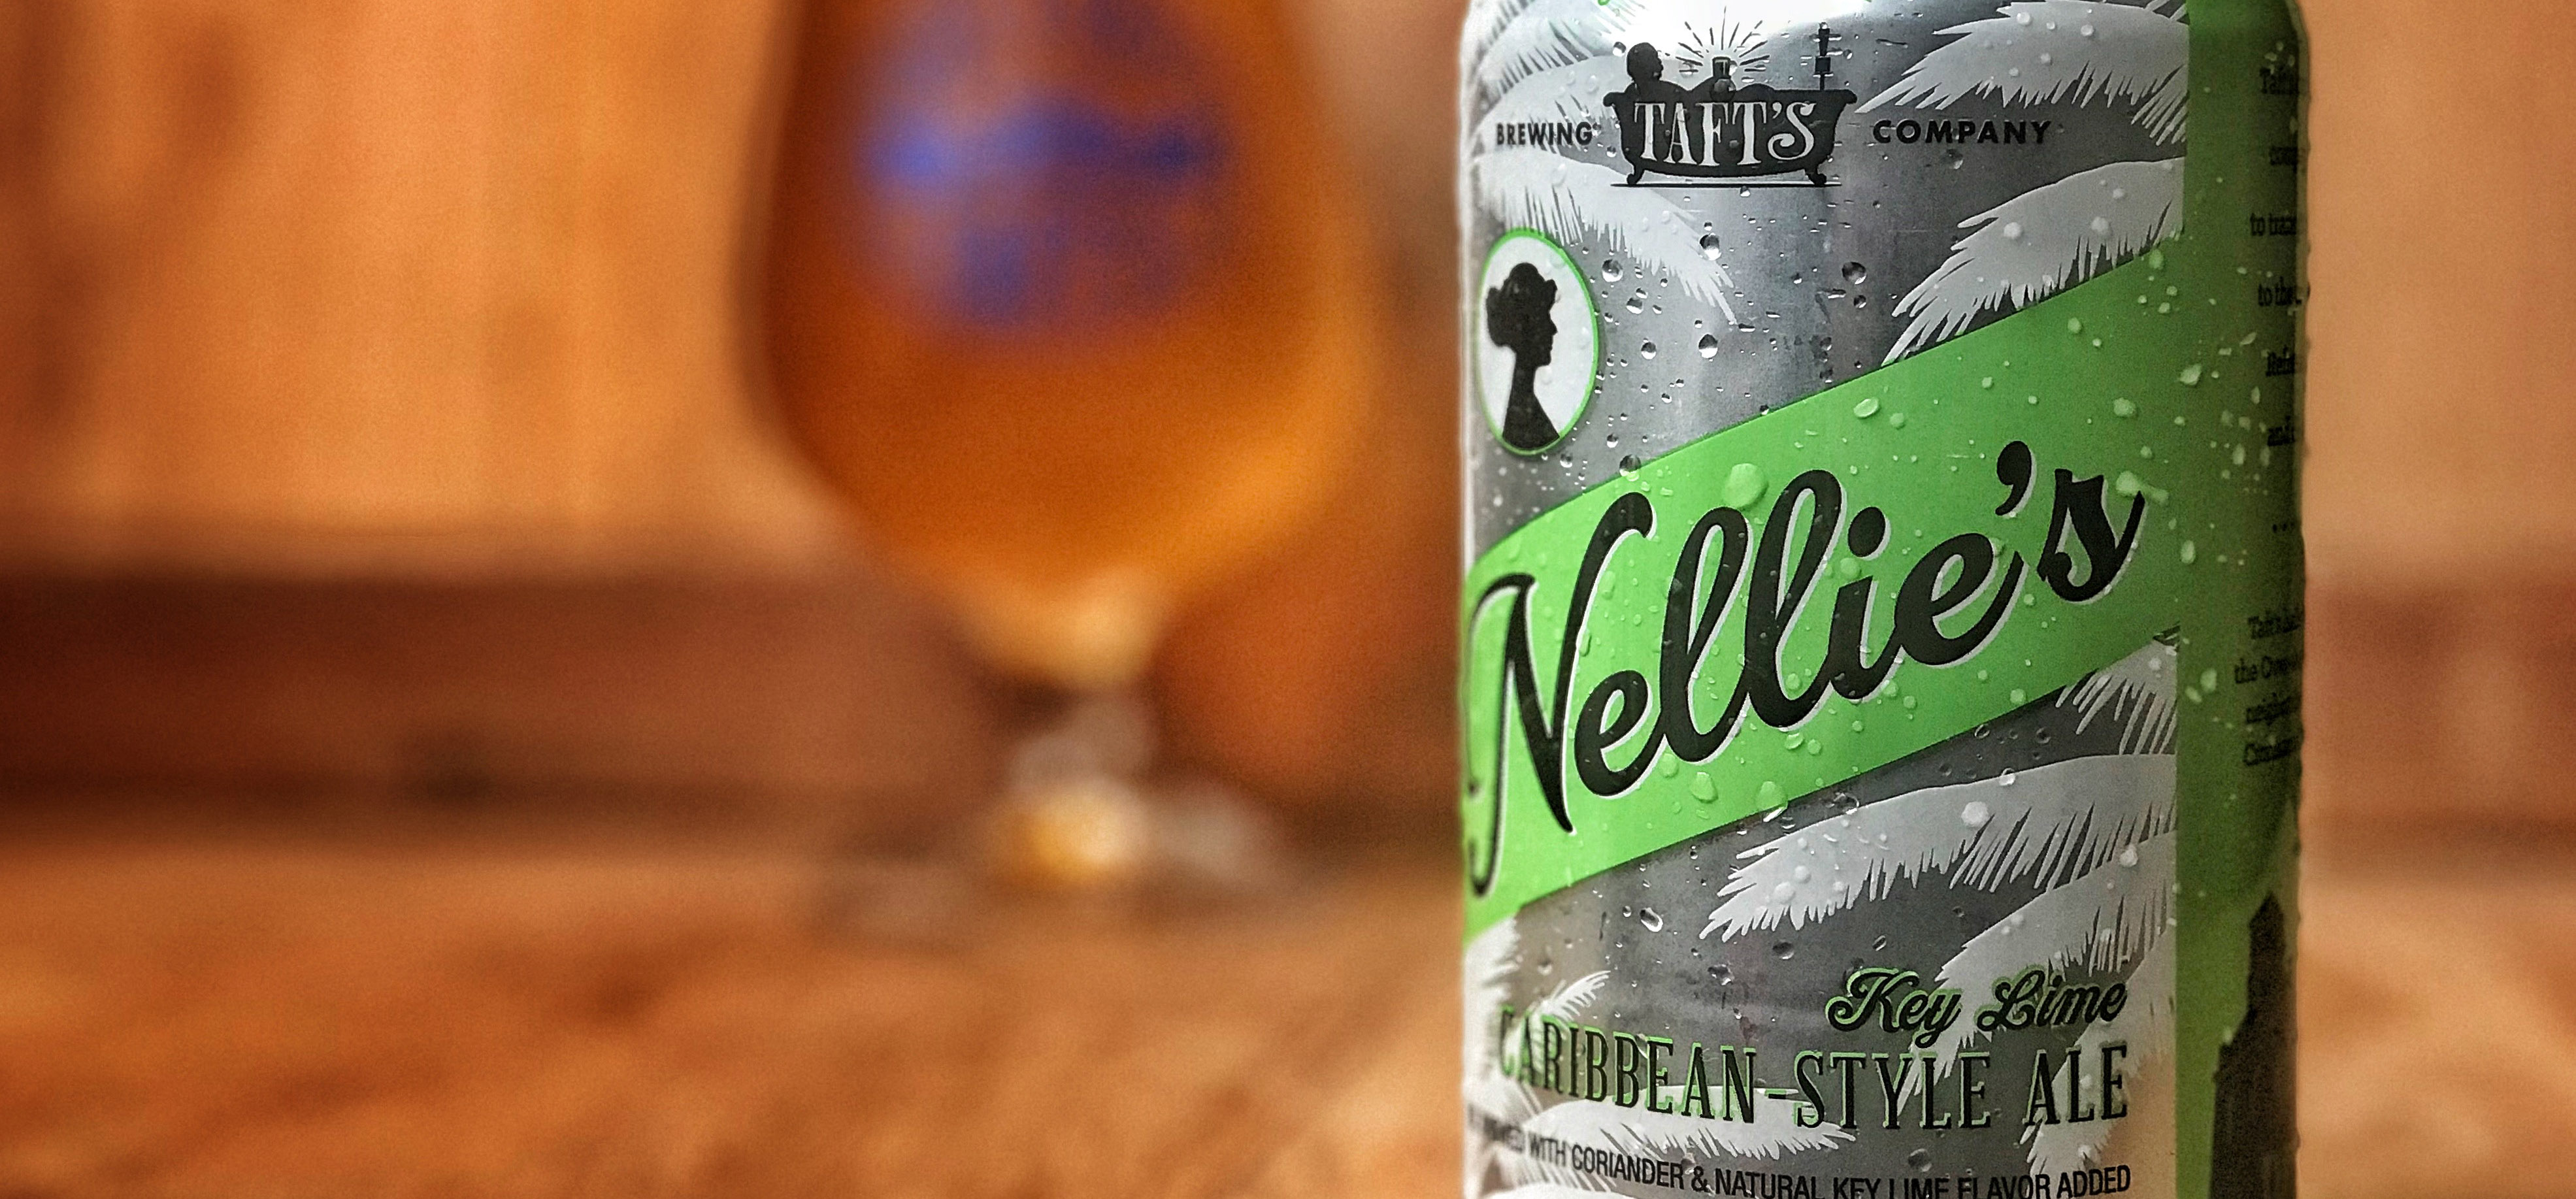 tafts ale house nellie u0026 39 s key lime caribbean ale